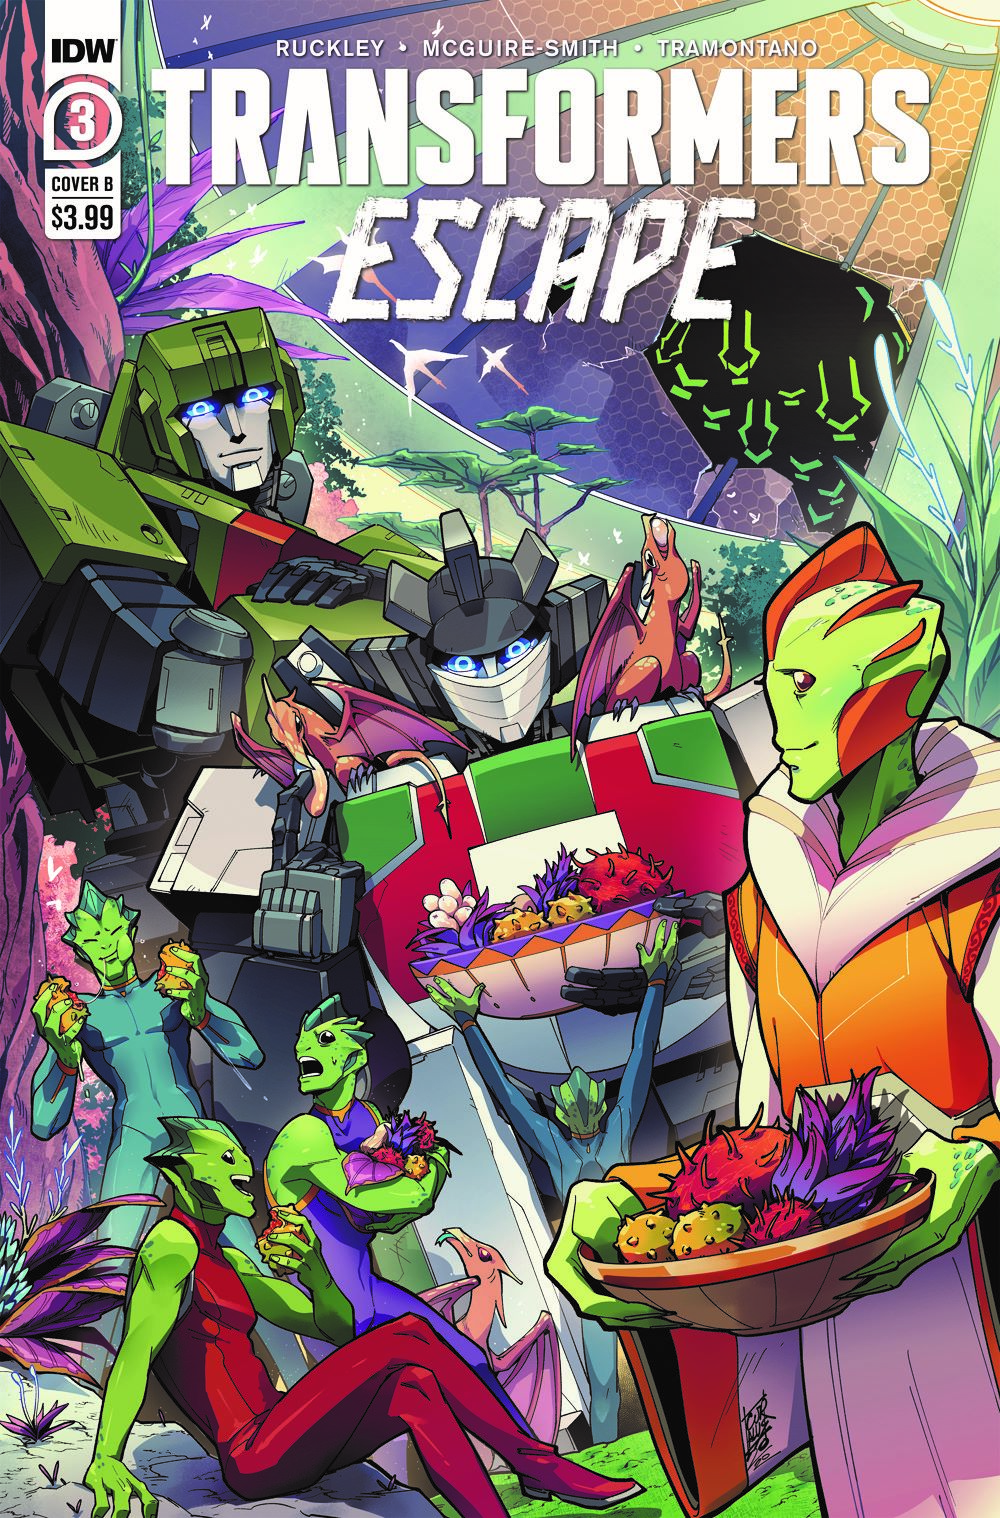 TFEscape03-Cover-B ComicList: IDW Publishing New Releases for 05/19/2021